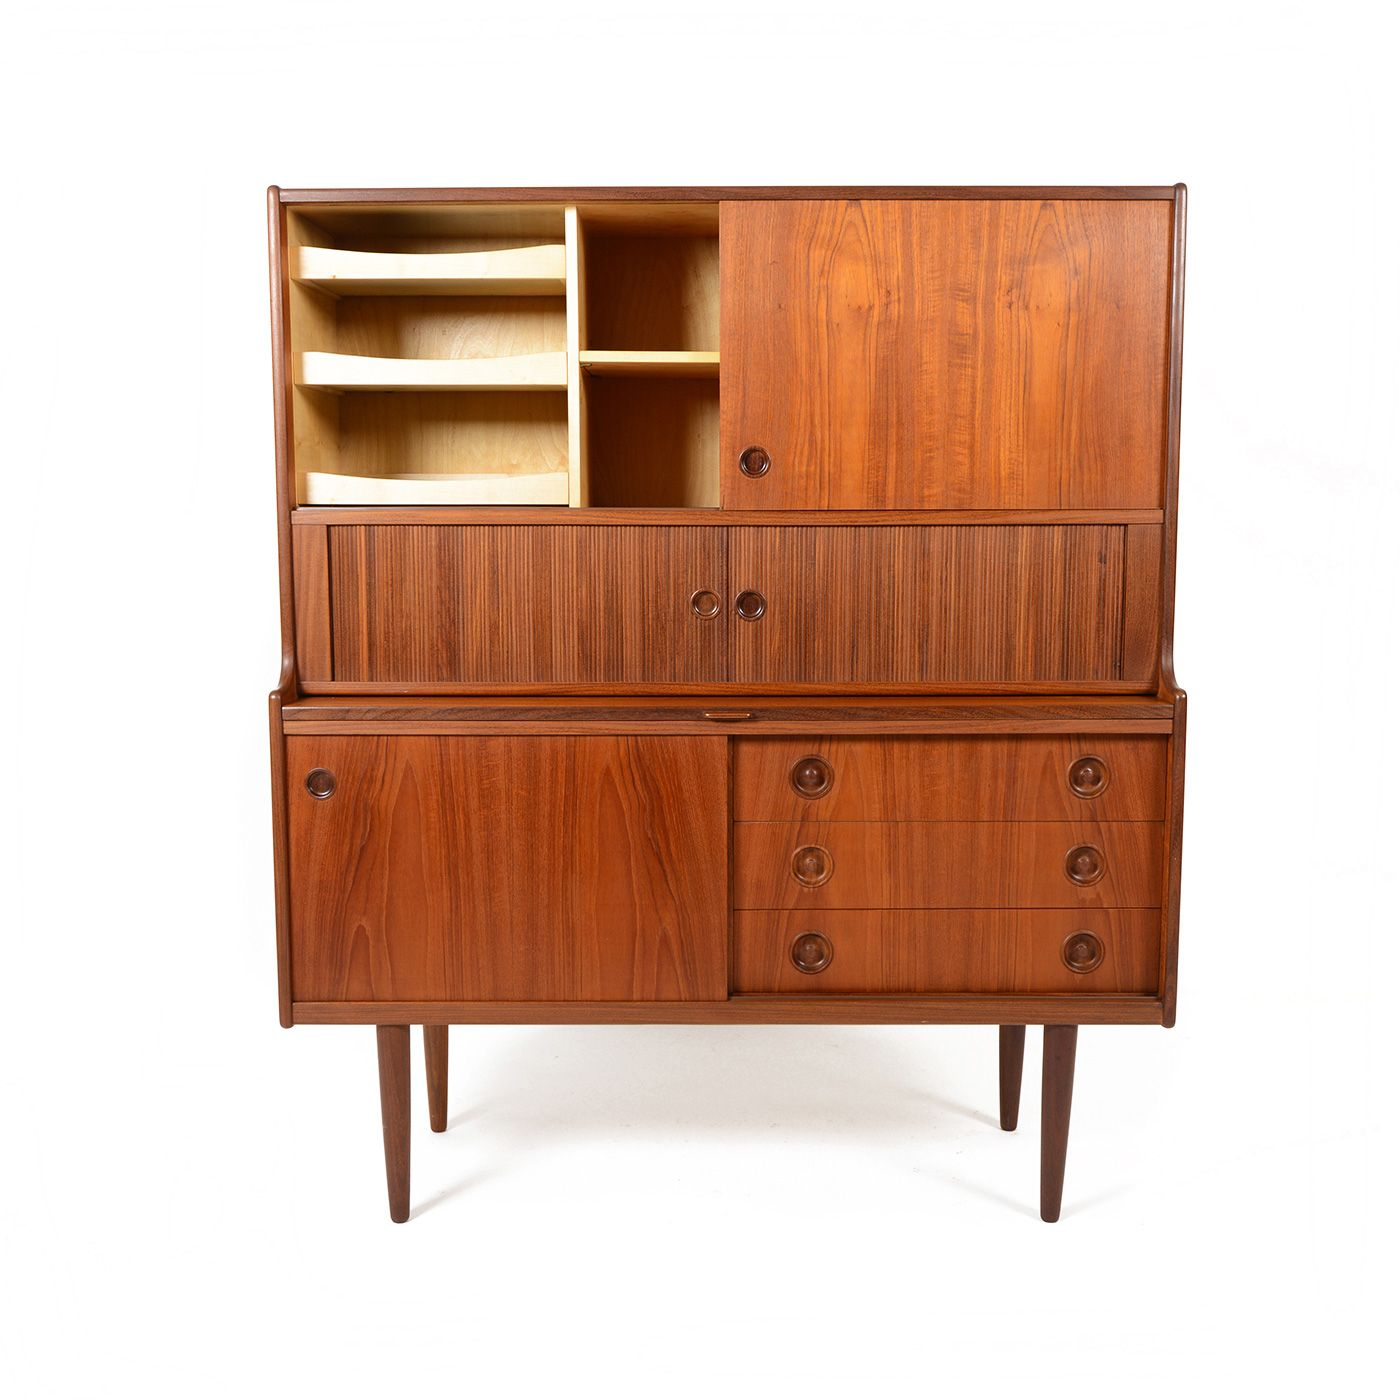 Beau Tall Vintage Credenza